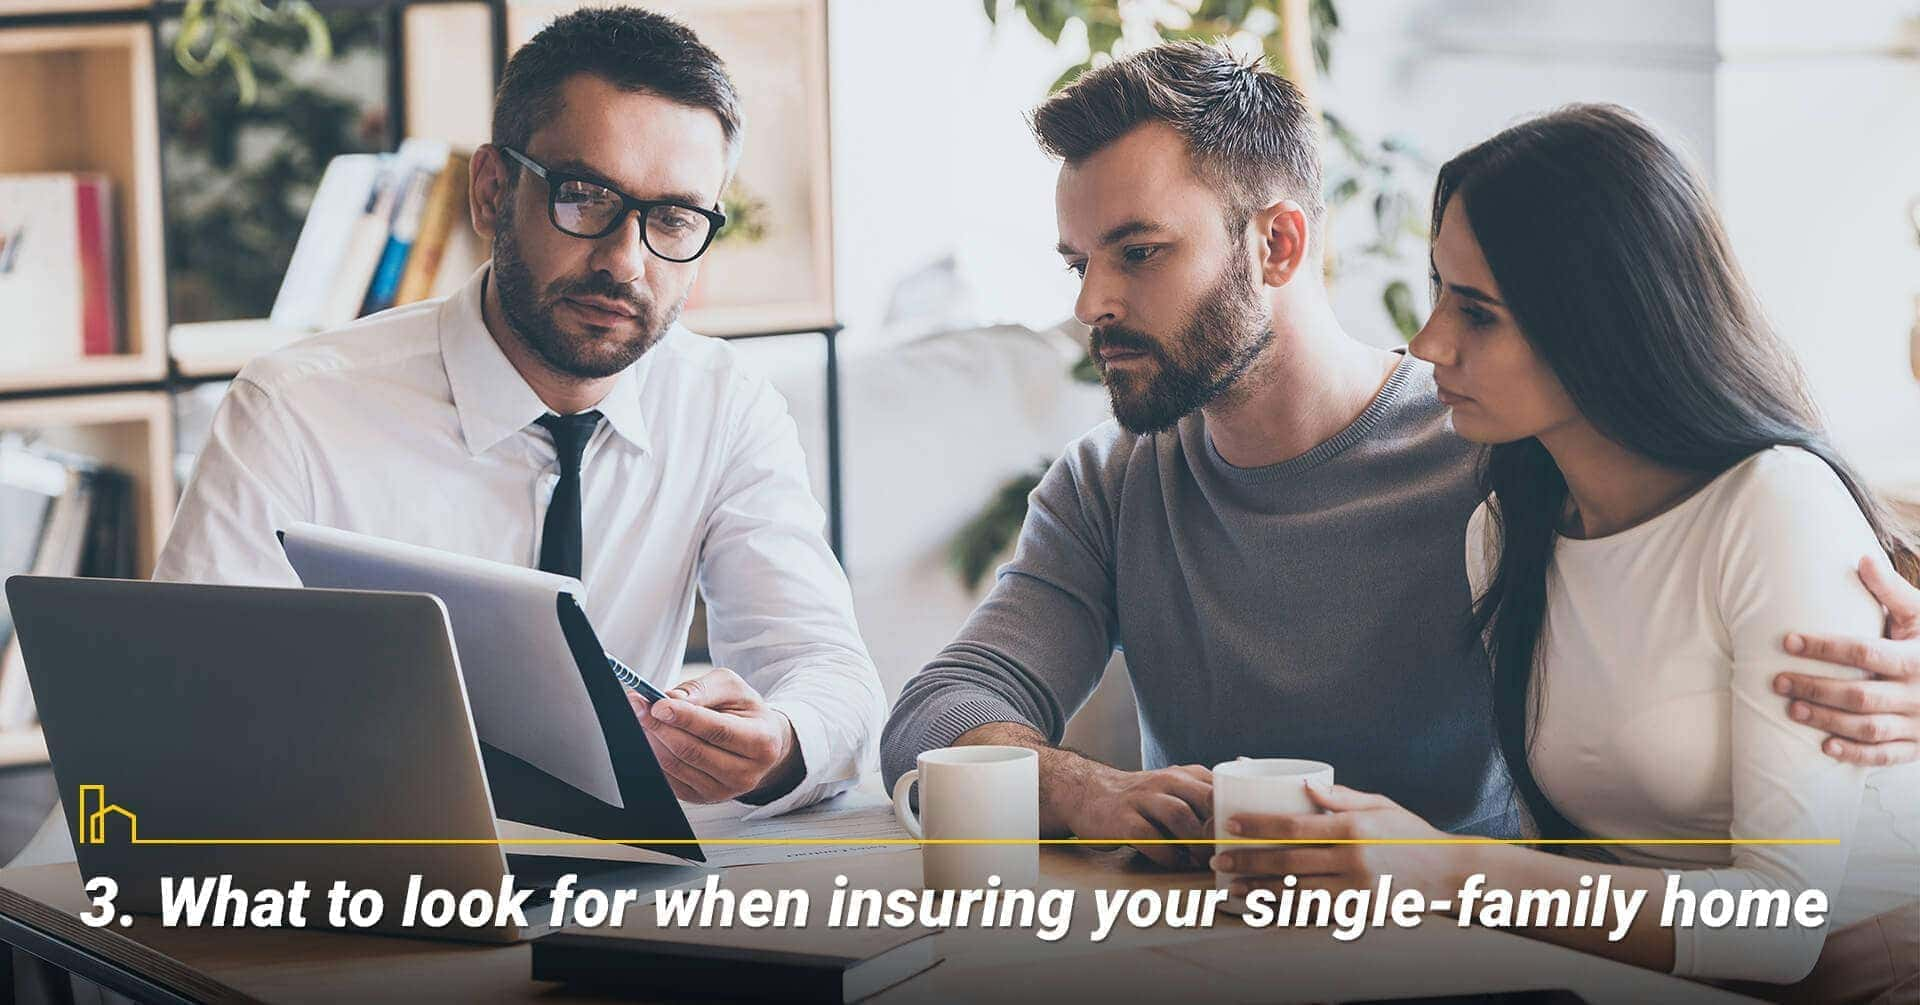 What to look for when insuring your single-family home, things to consider when insuring your home